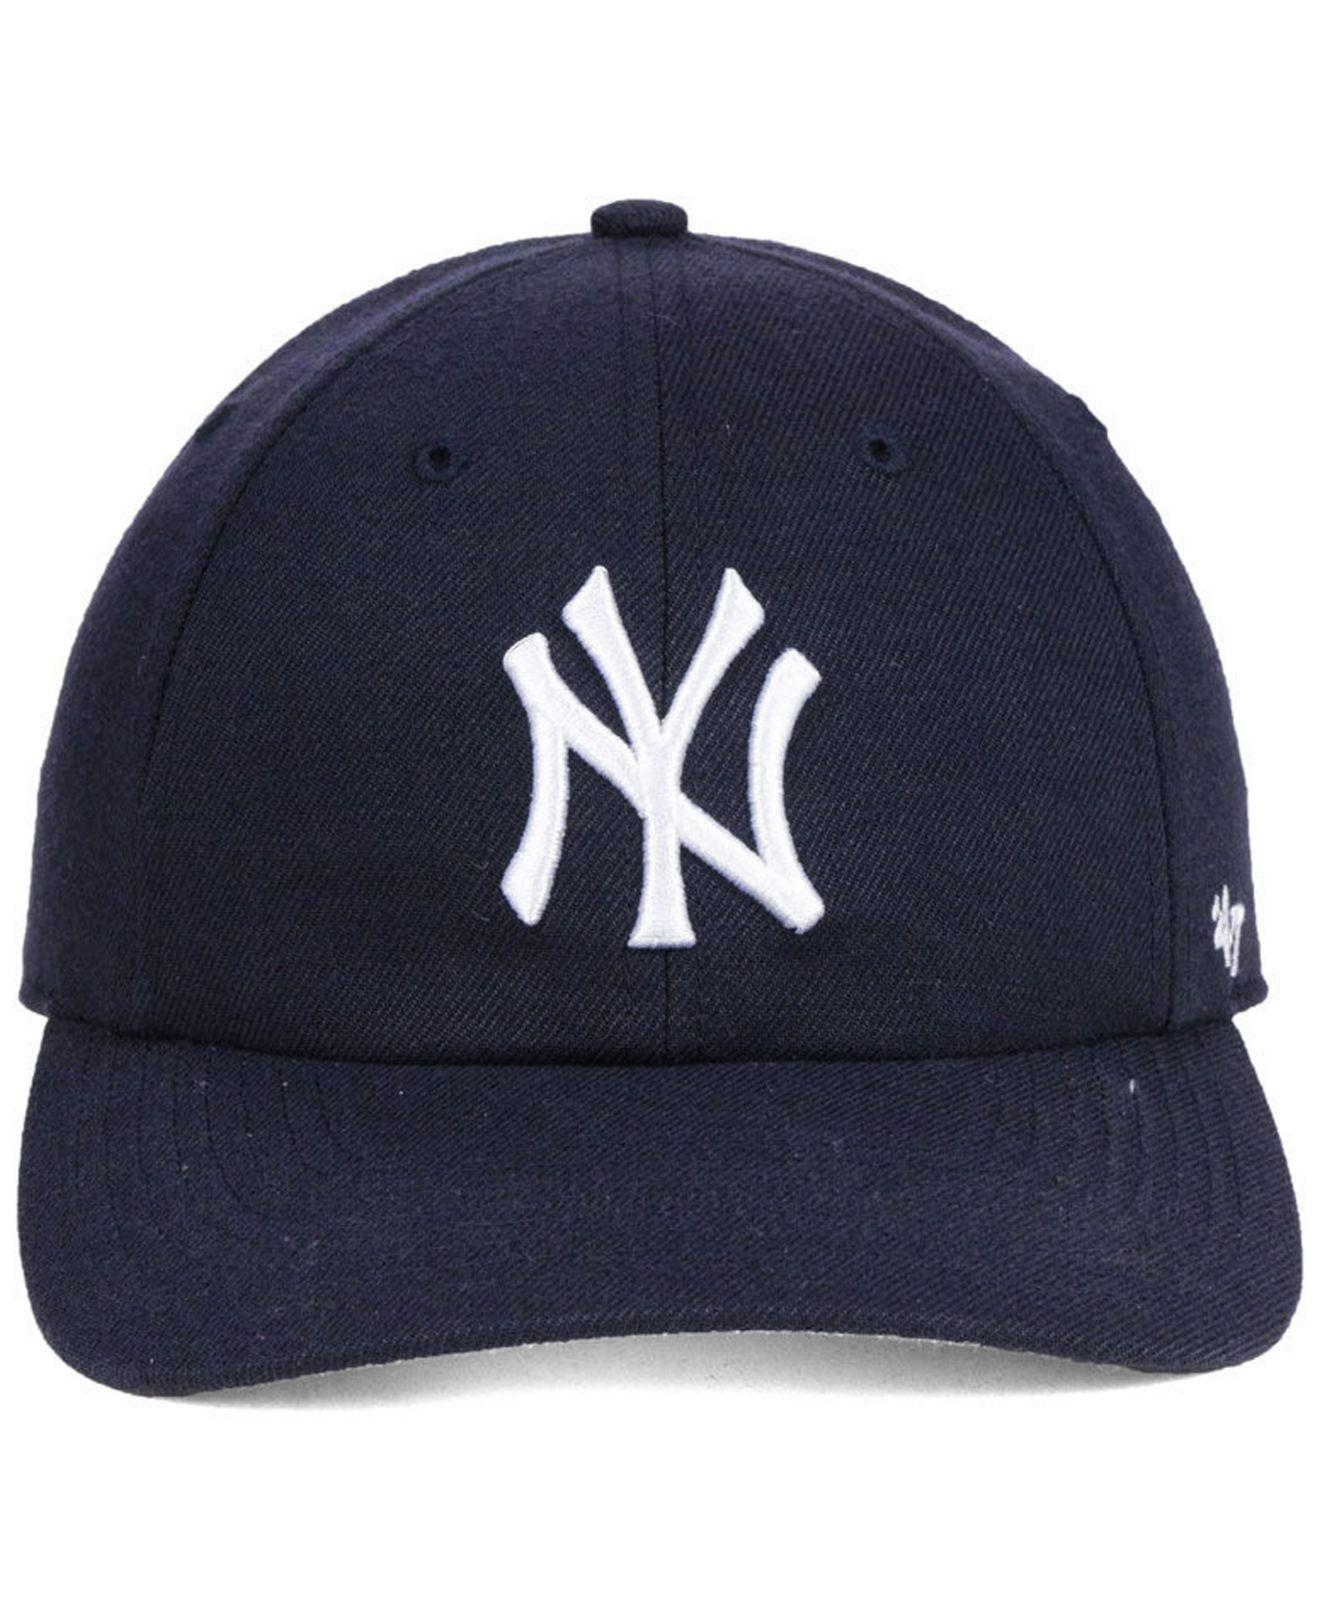 buy online 55c17 456e2 ... france lyst 47 brand new york yankees no shot clean up cap in blue for  men